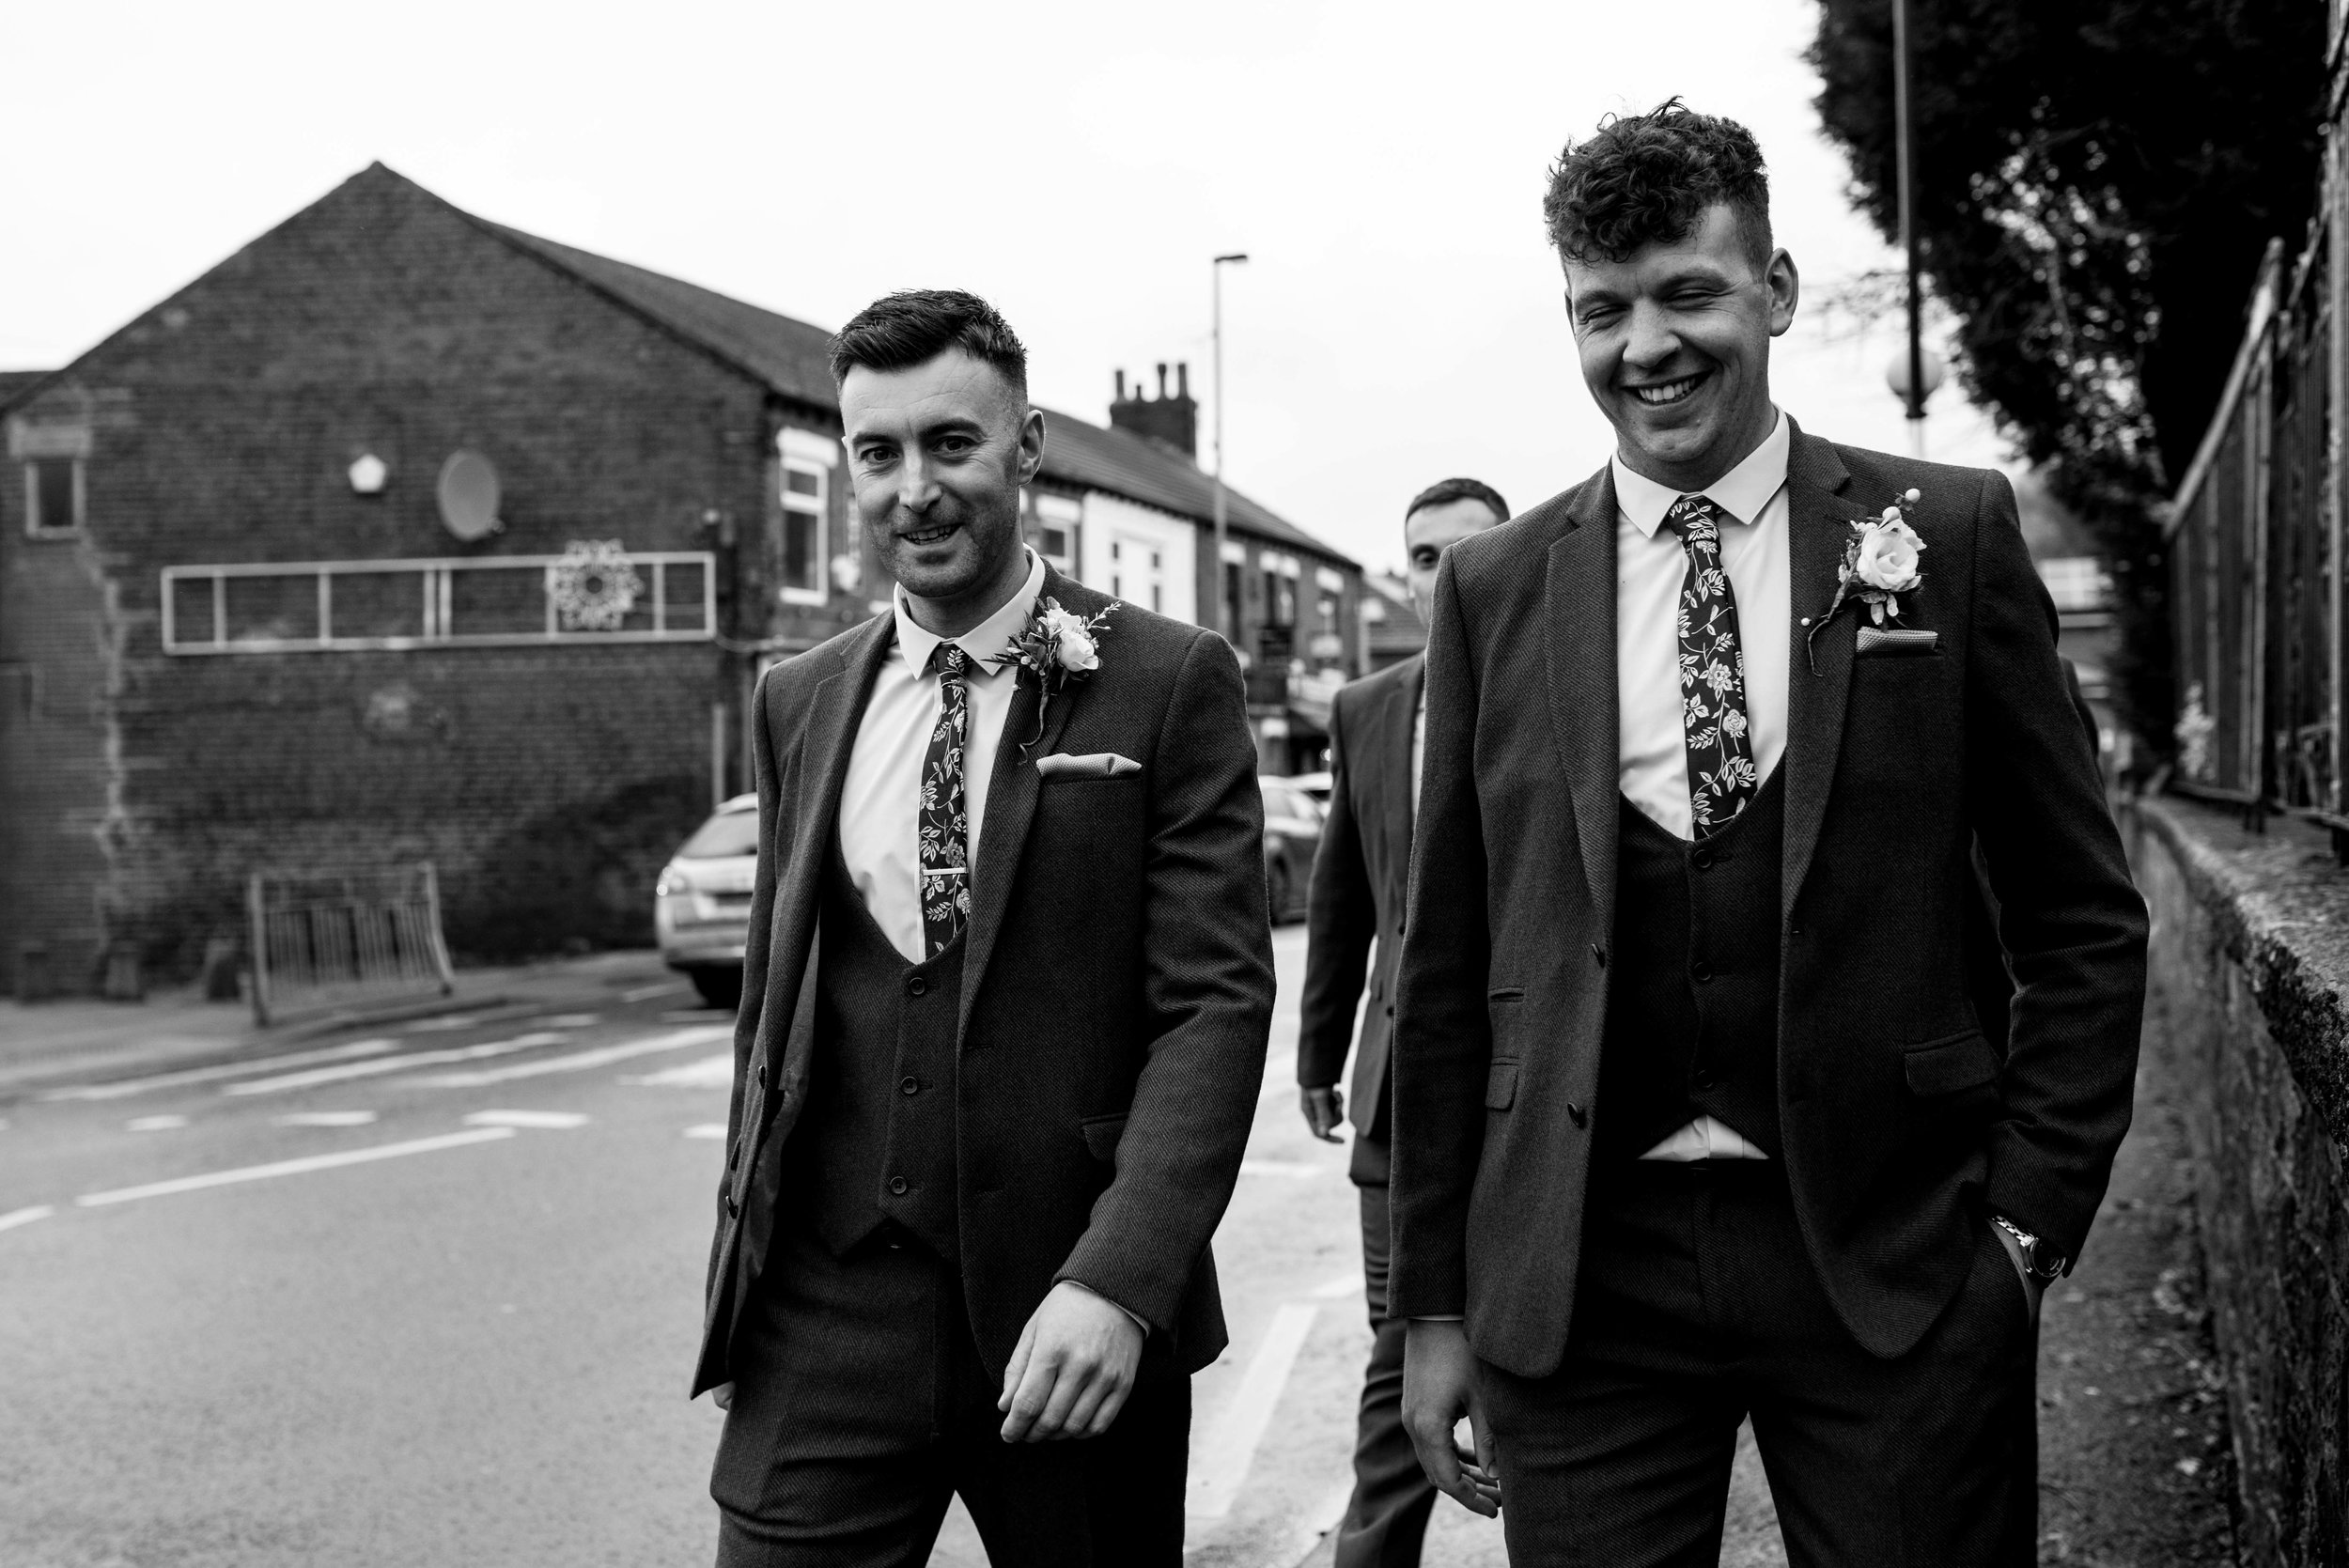 The groom and his men walking to church from the pub